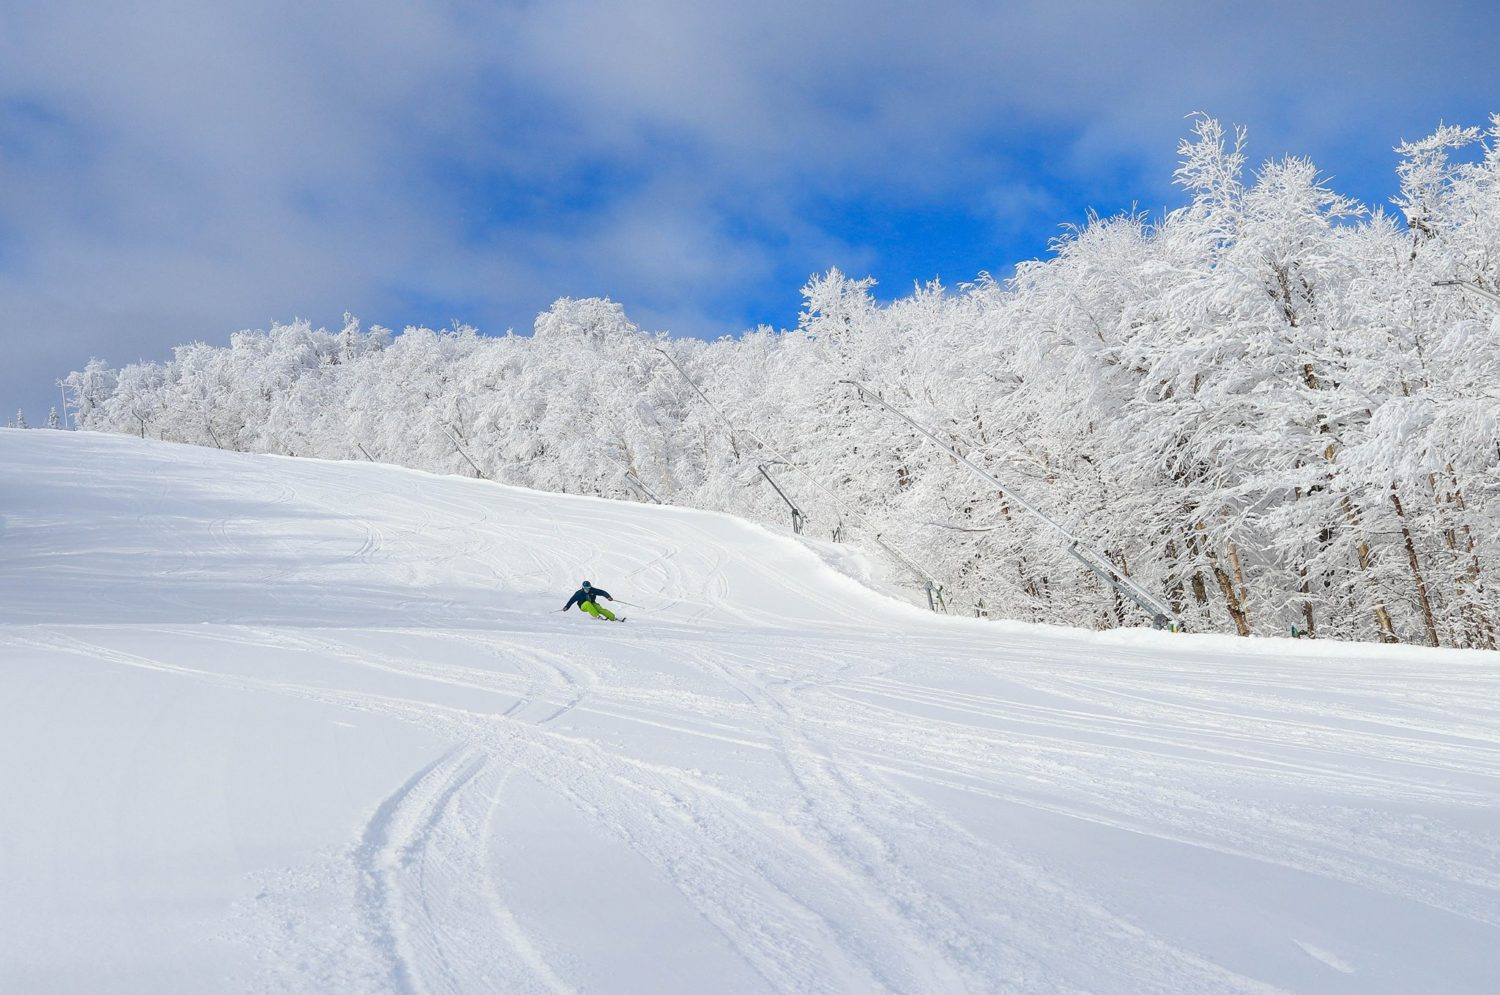 Mount Sunapee, vail resorts, new hampshire